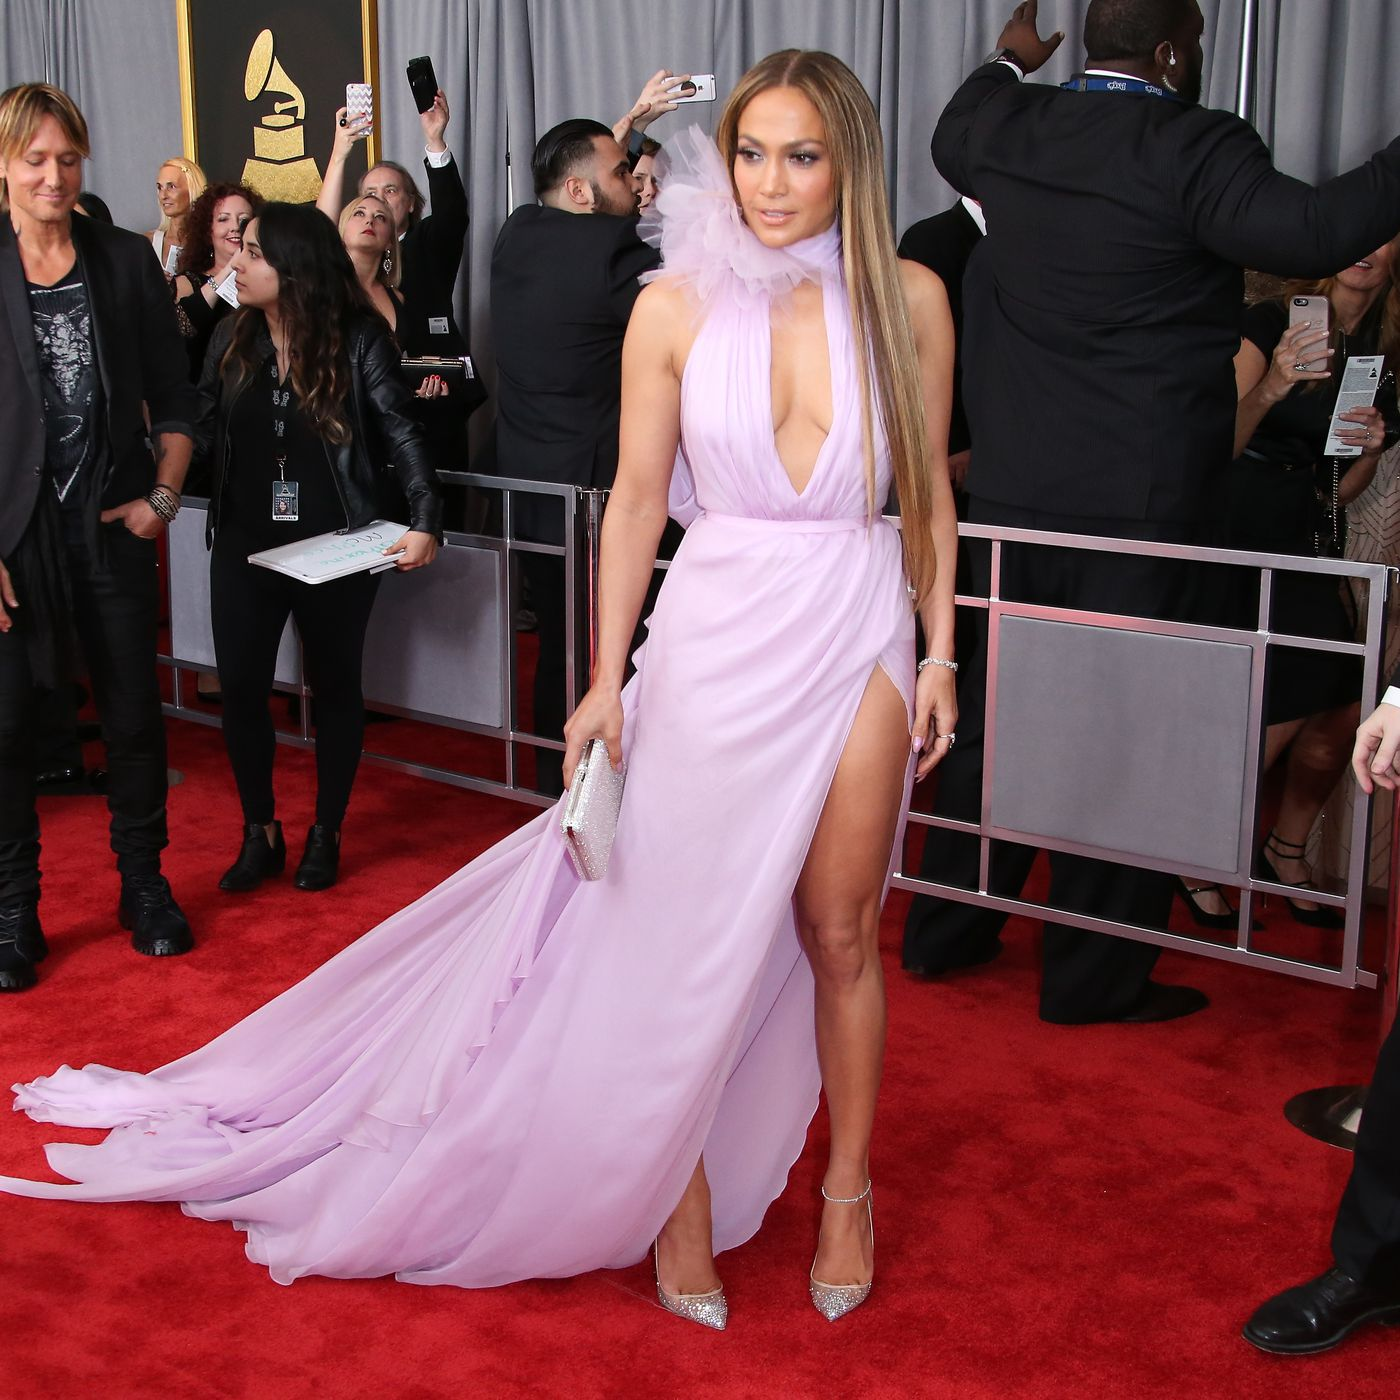 f728d5fbd6 What Celebrities Wear Under Those Red Carpet Dresses - Racked